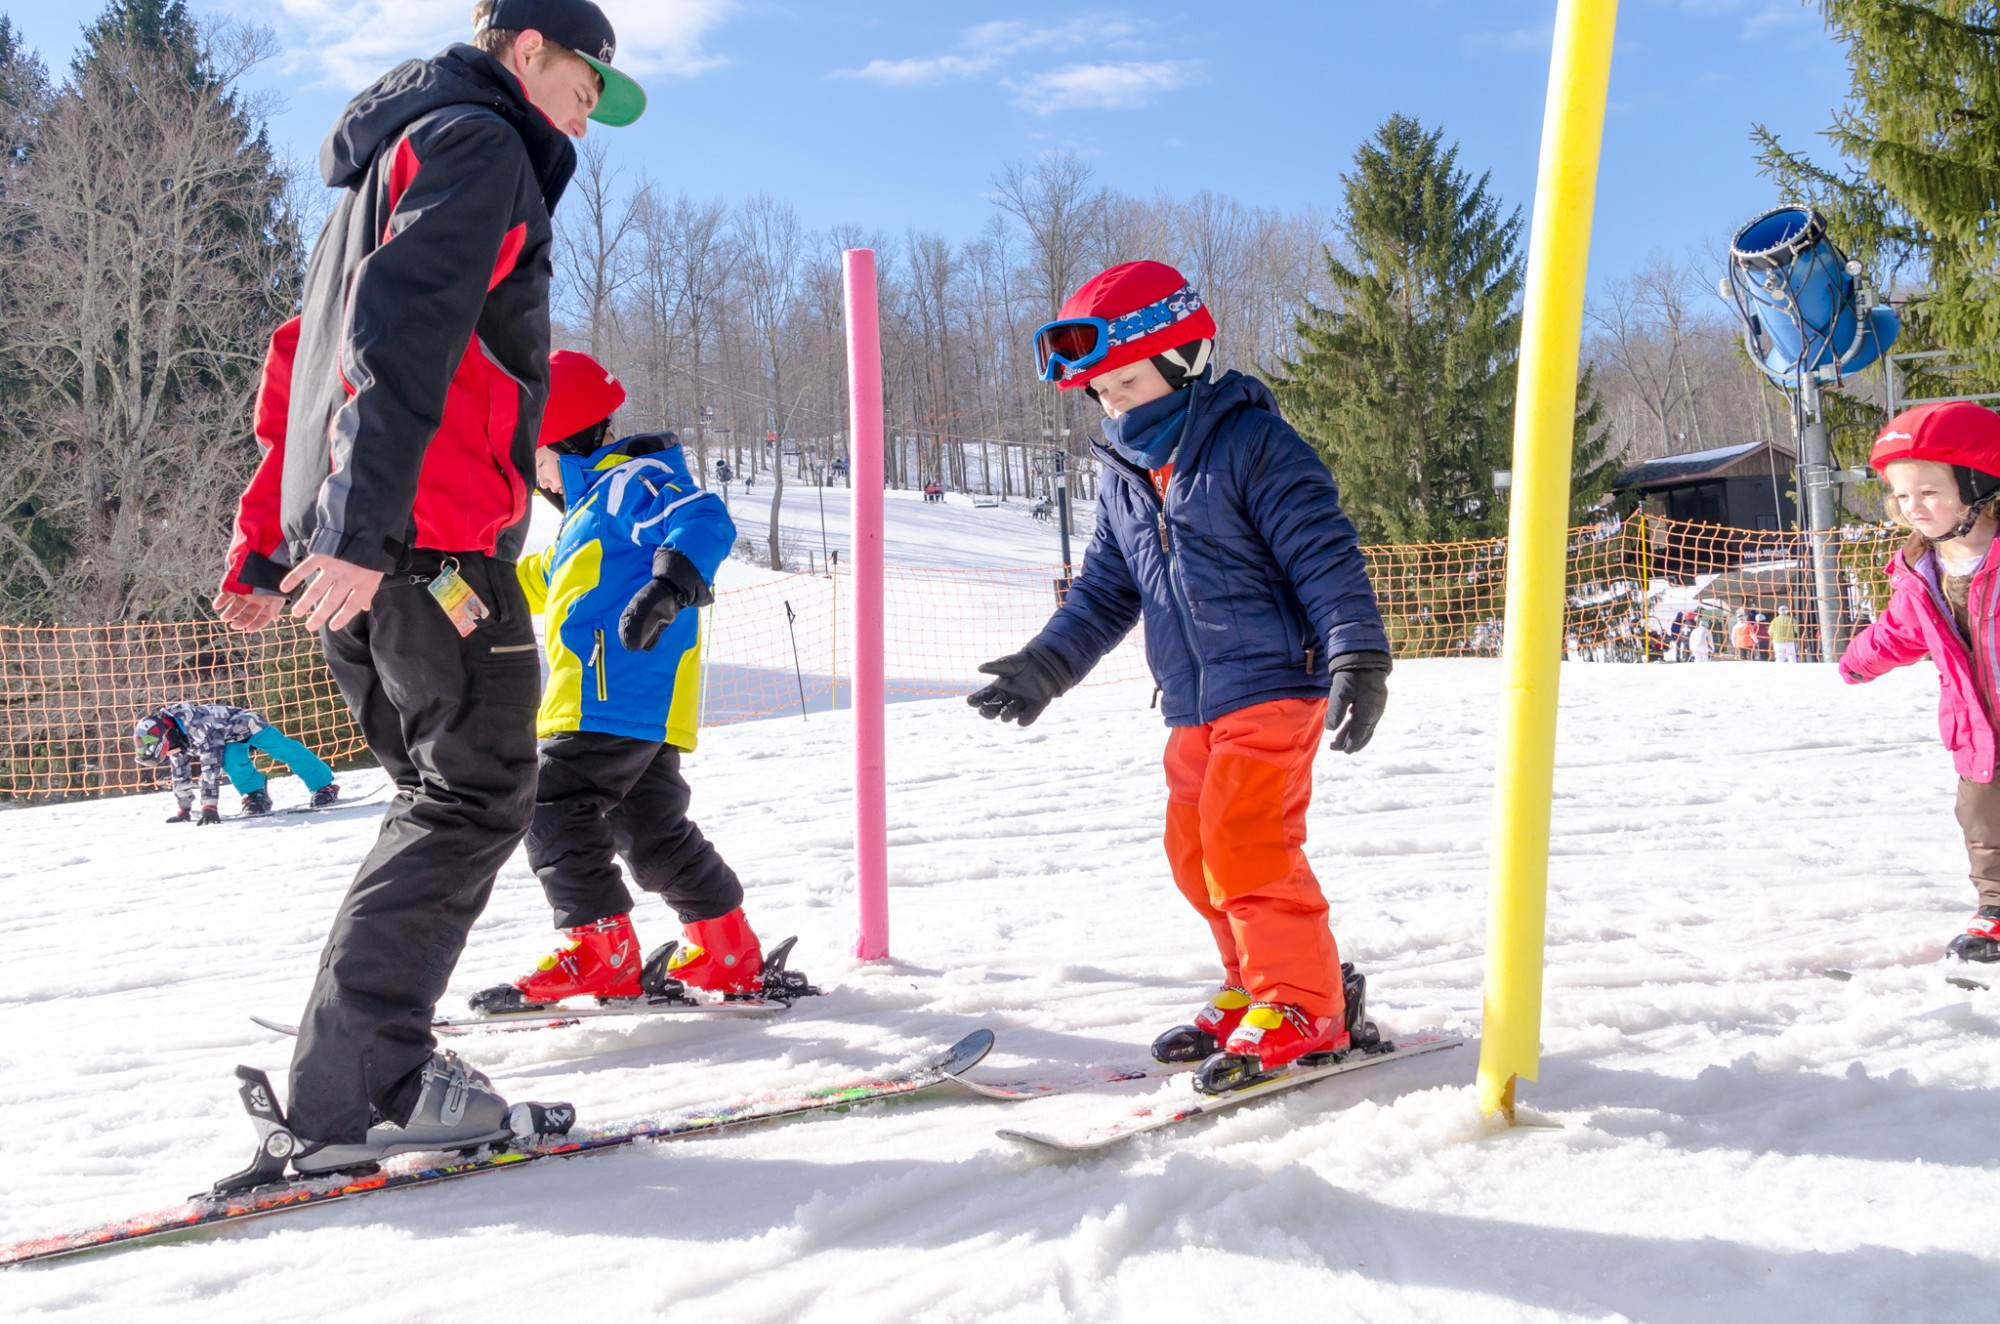 Children's Program includes on-snow skiing instruction